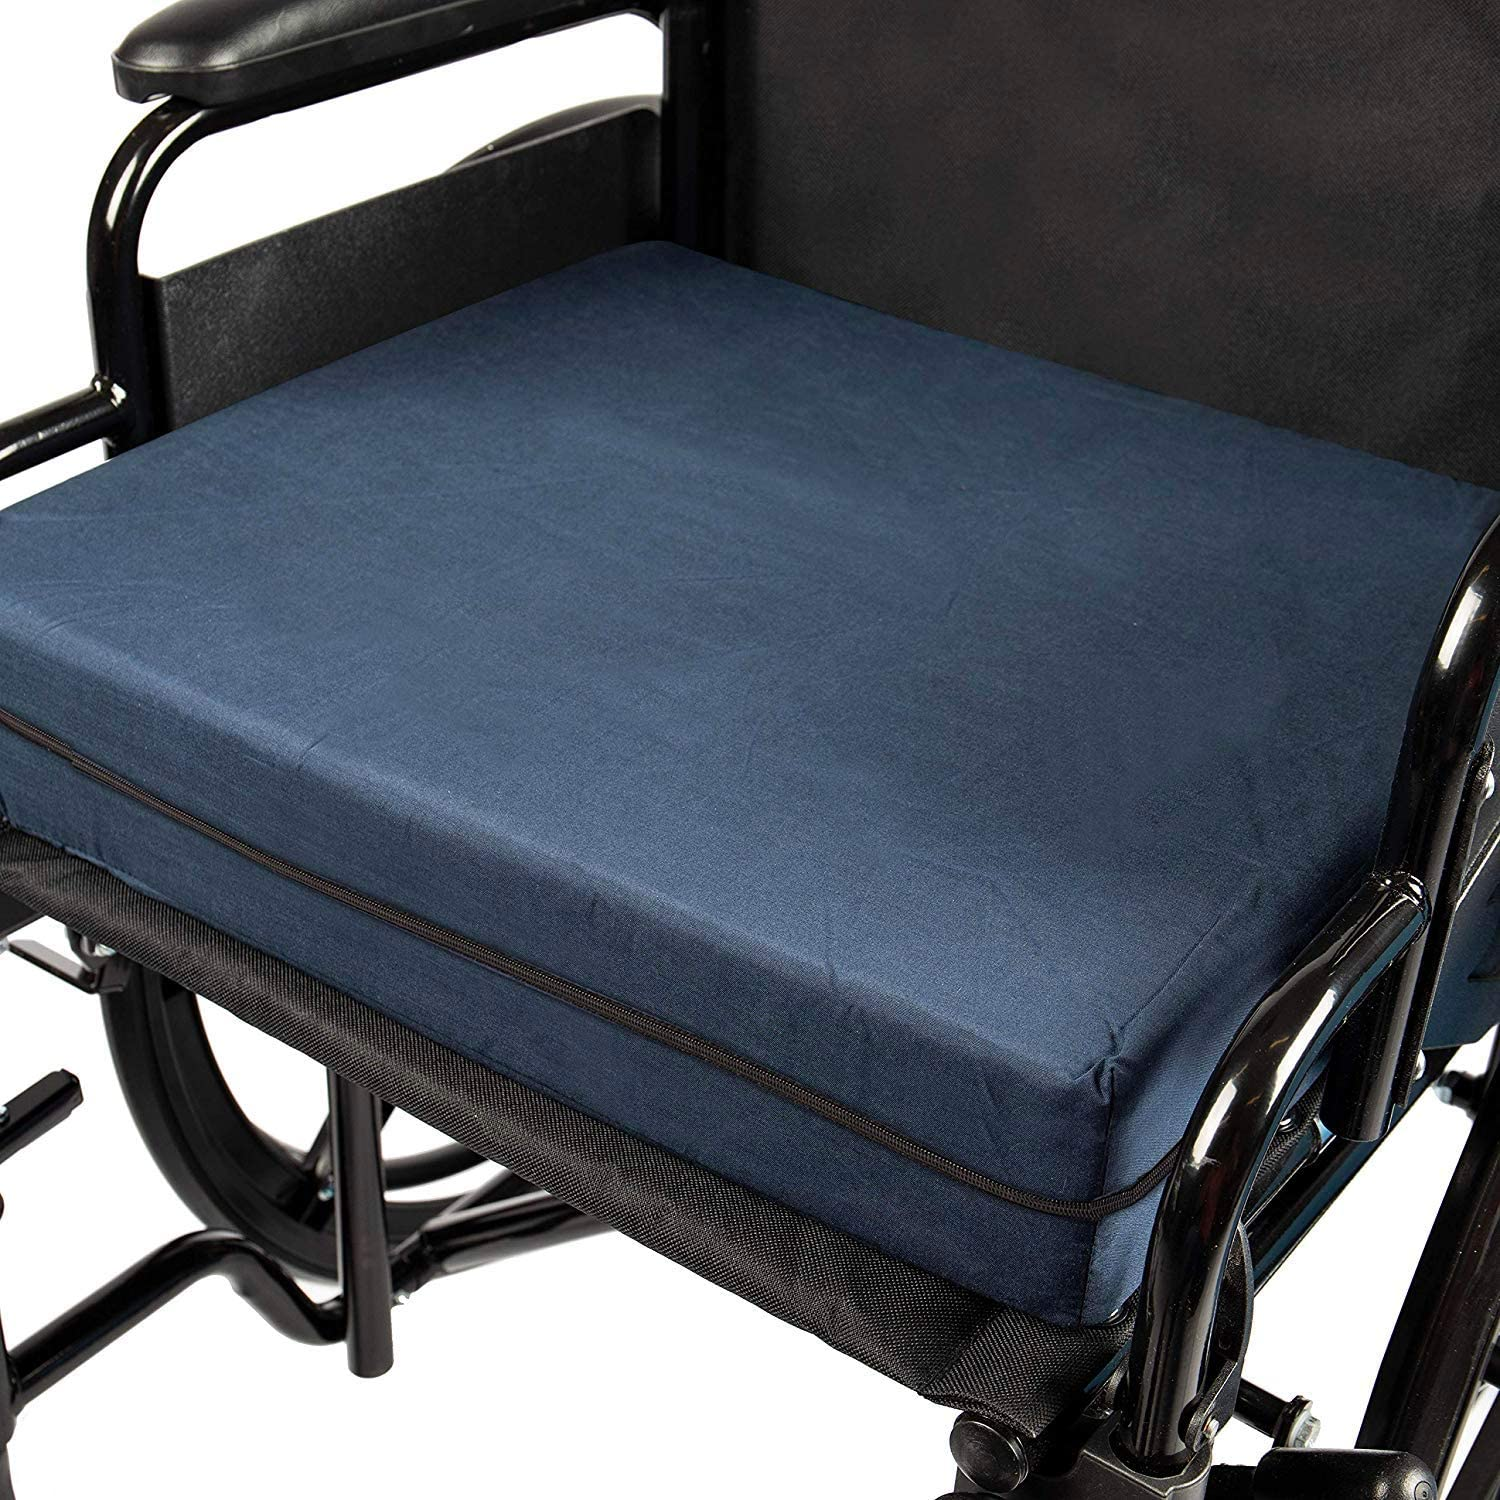 Max 81% OFF DMI Ranking TOP13 Seat Cushion and Chair Office Chairs for Wheelchair